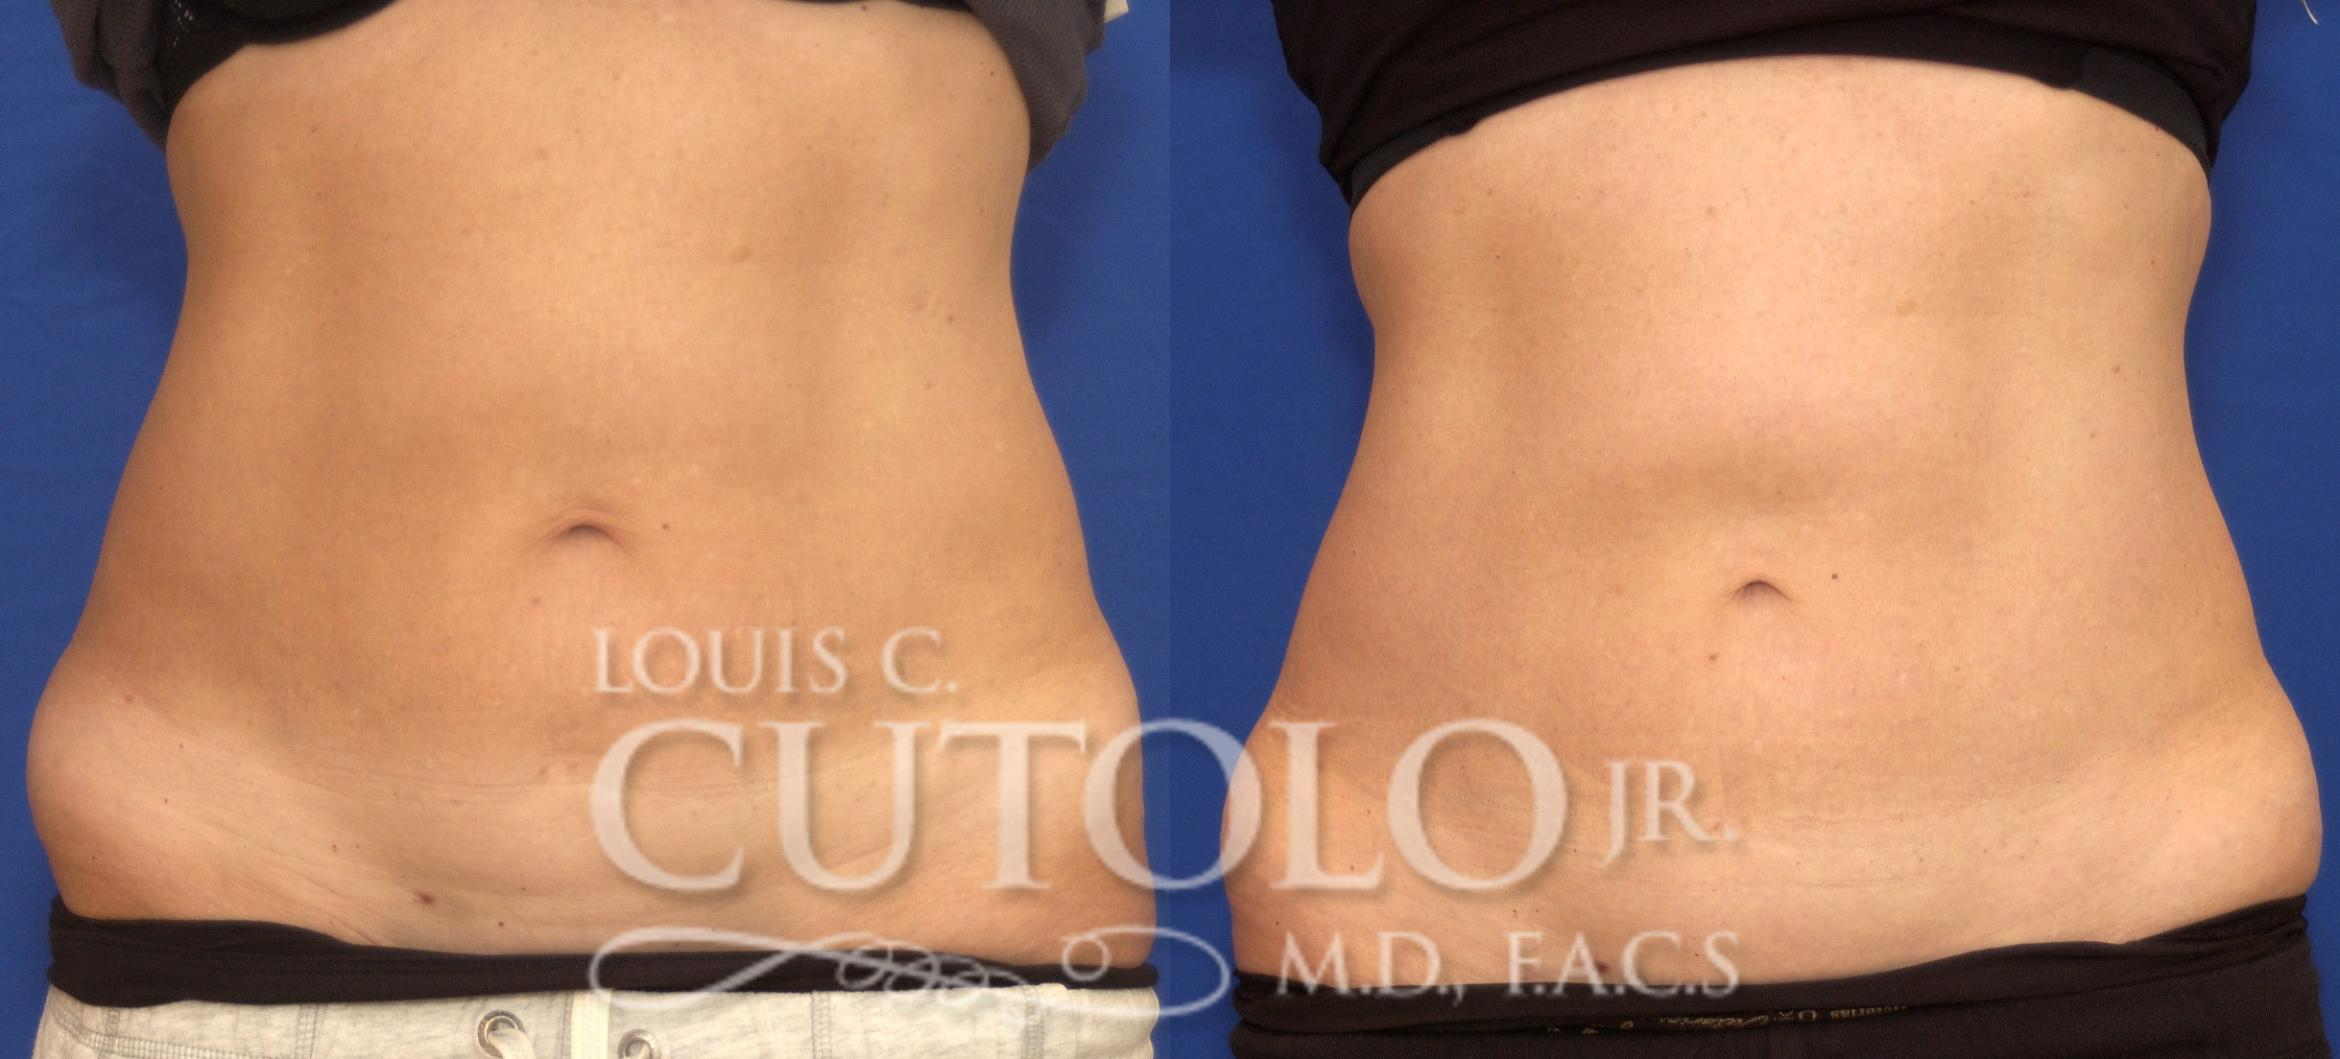 CoolSculpting® Before & After Photo | Brooklyn, Staten Island, Queens, NY | Louis C. Cotolo, Jr., M.D., F.A.C.S.